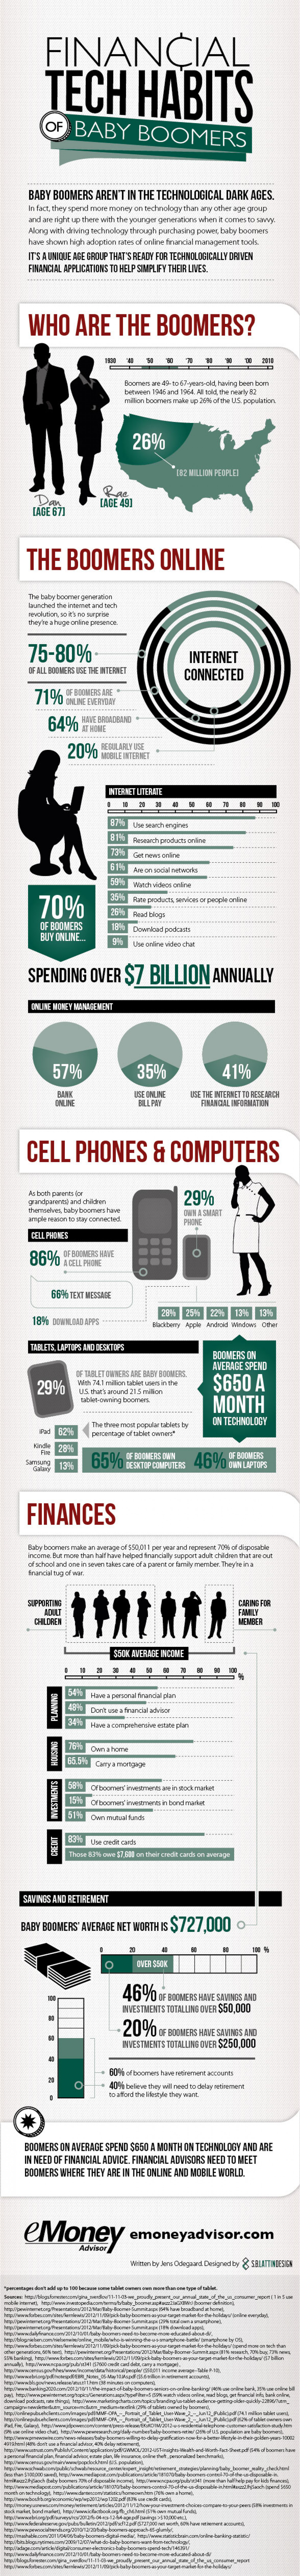 Financial Tech Habits of Baby Boomers Infographic